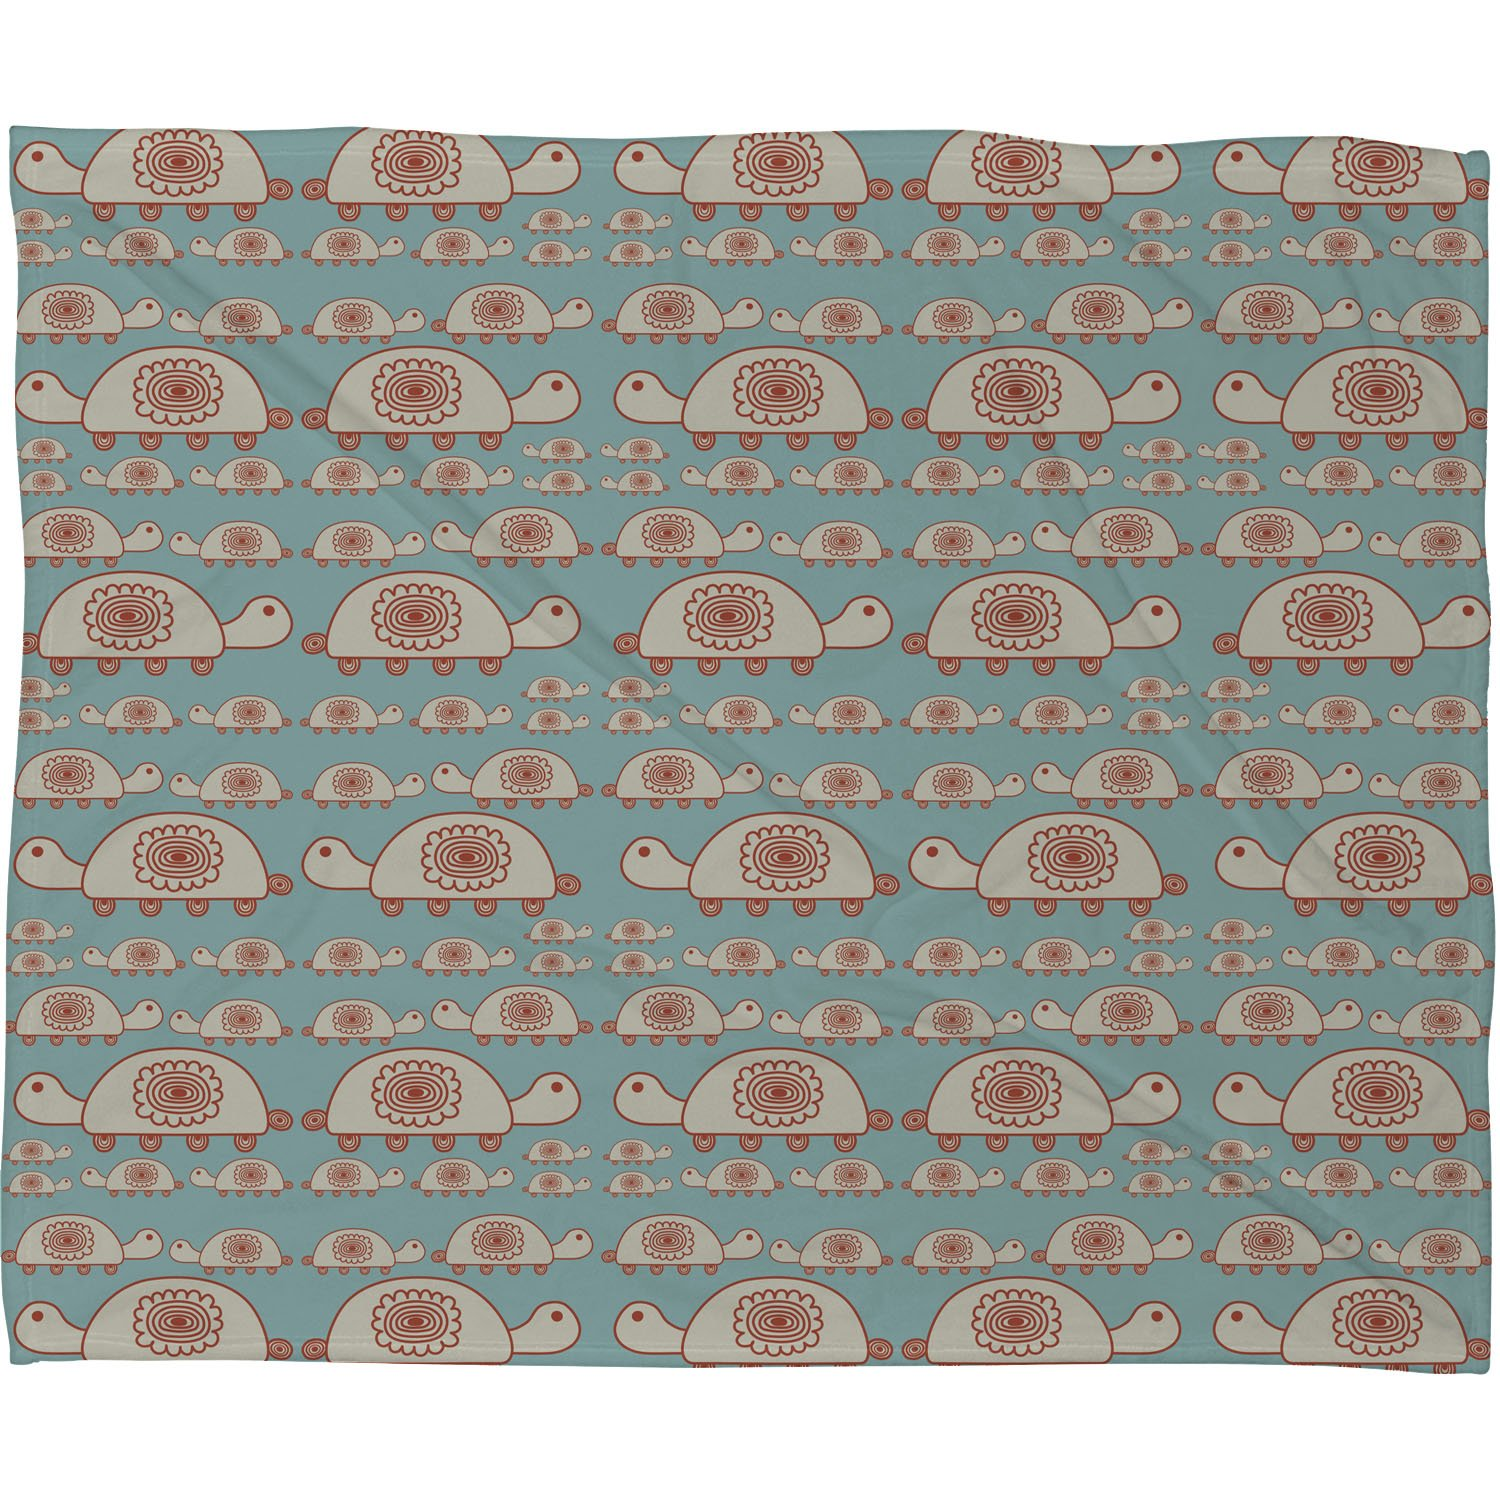 Deny Designs Gabriela Larios Tortuguero Dos Fleece Throw Blanket 50 x 60